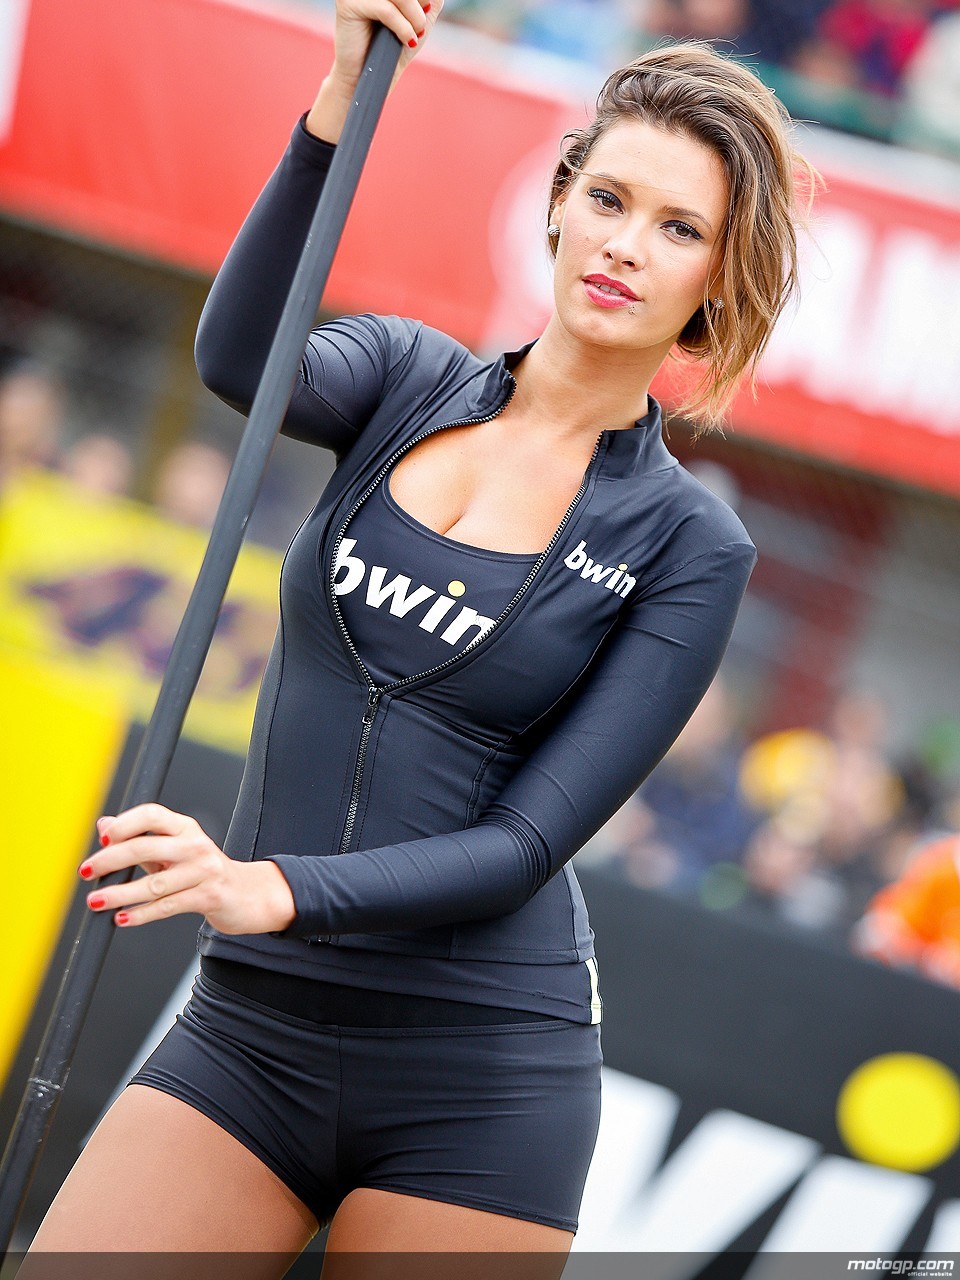 Paddock Girls at Brno - autoevolution